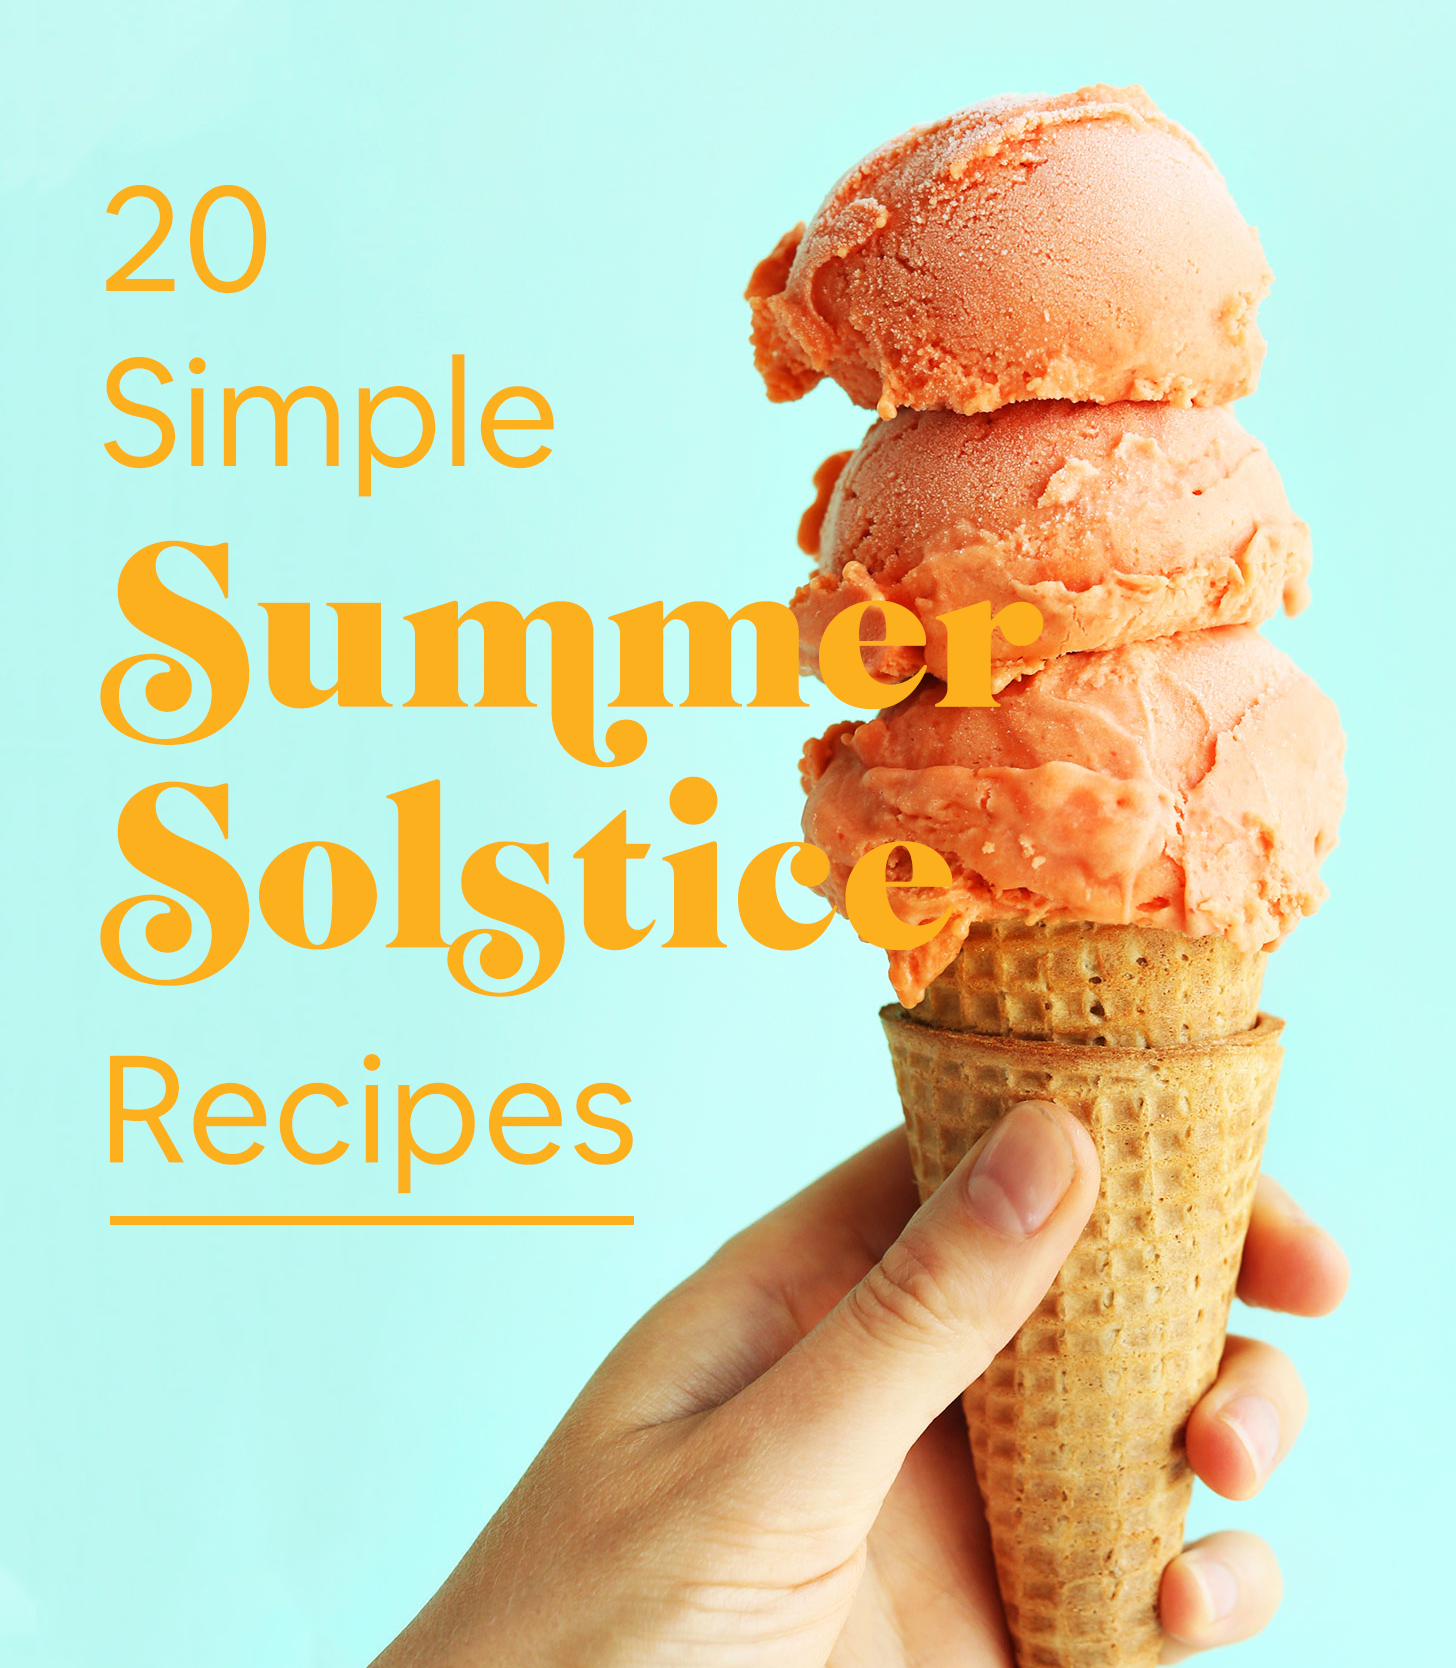 Scoops of raspberry mango sorbet on a cone with text overlaid saying 20 Simple Summer Solstice Recipes